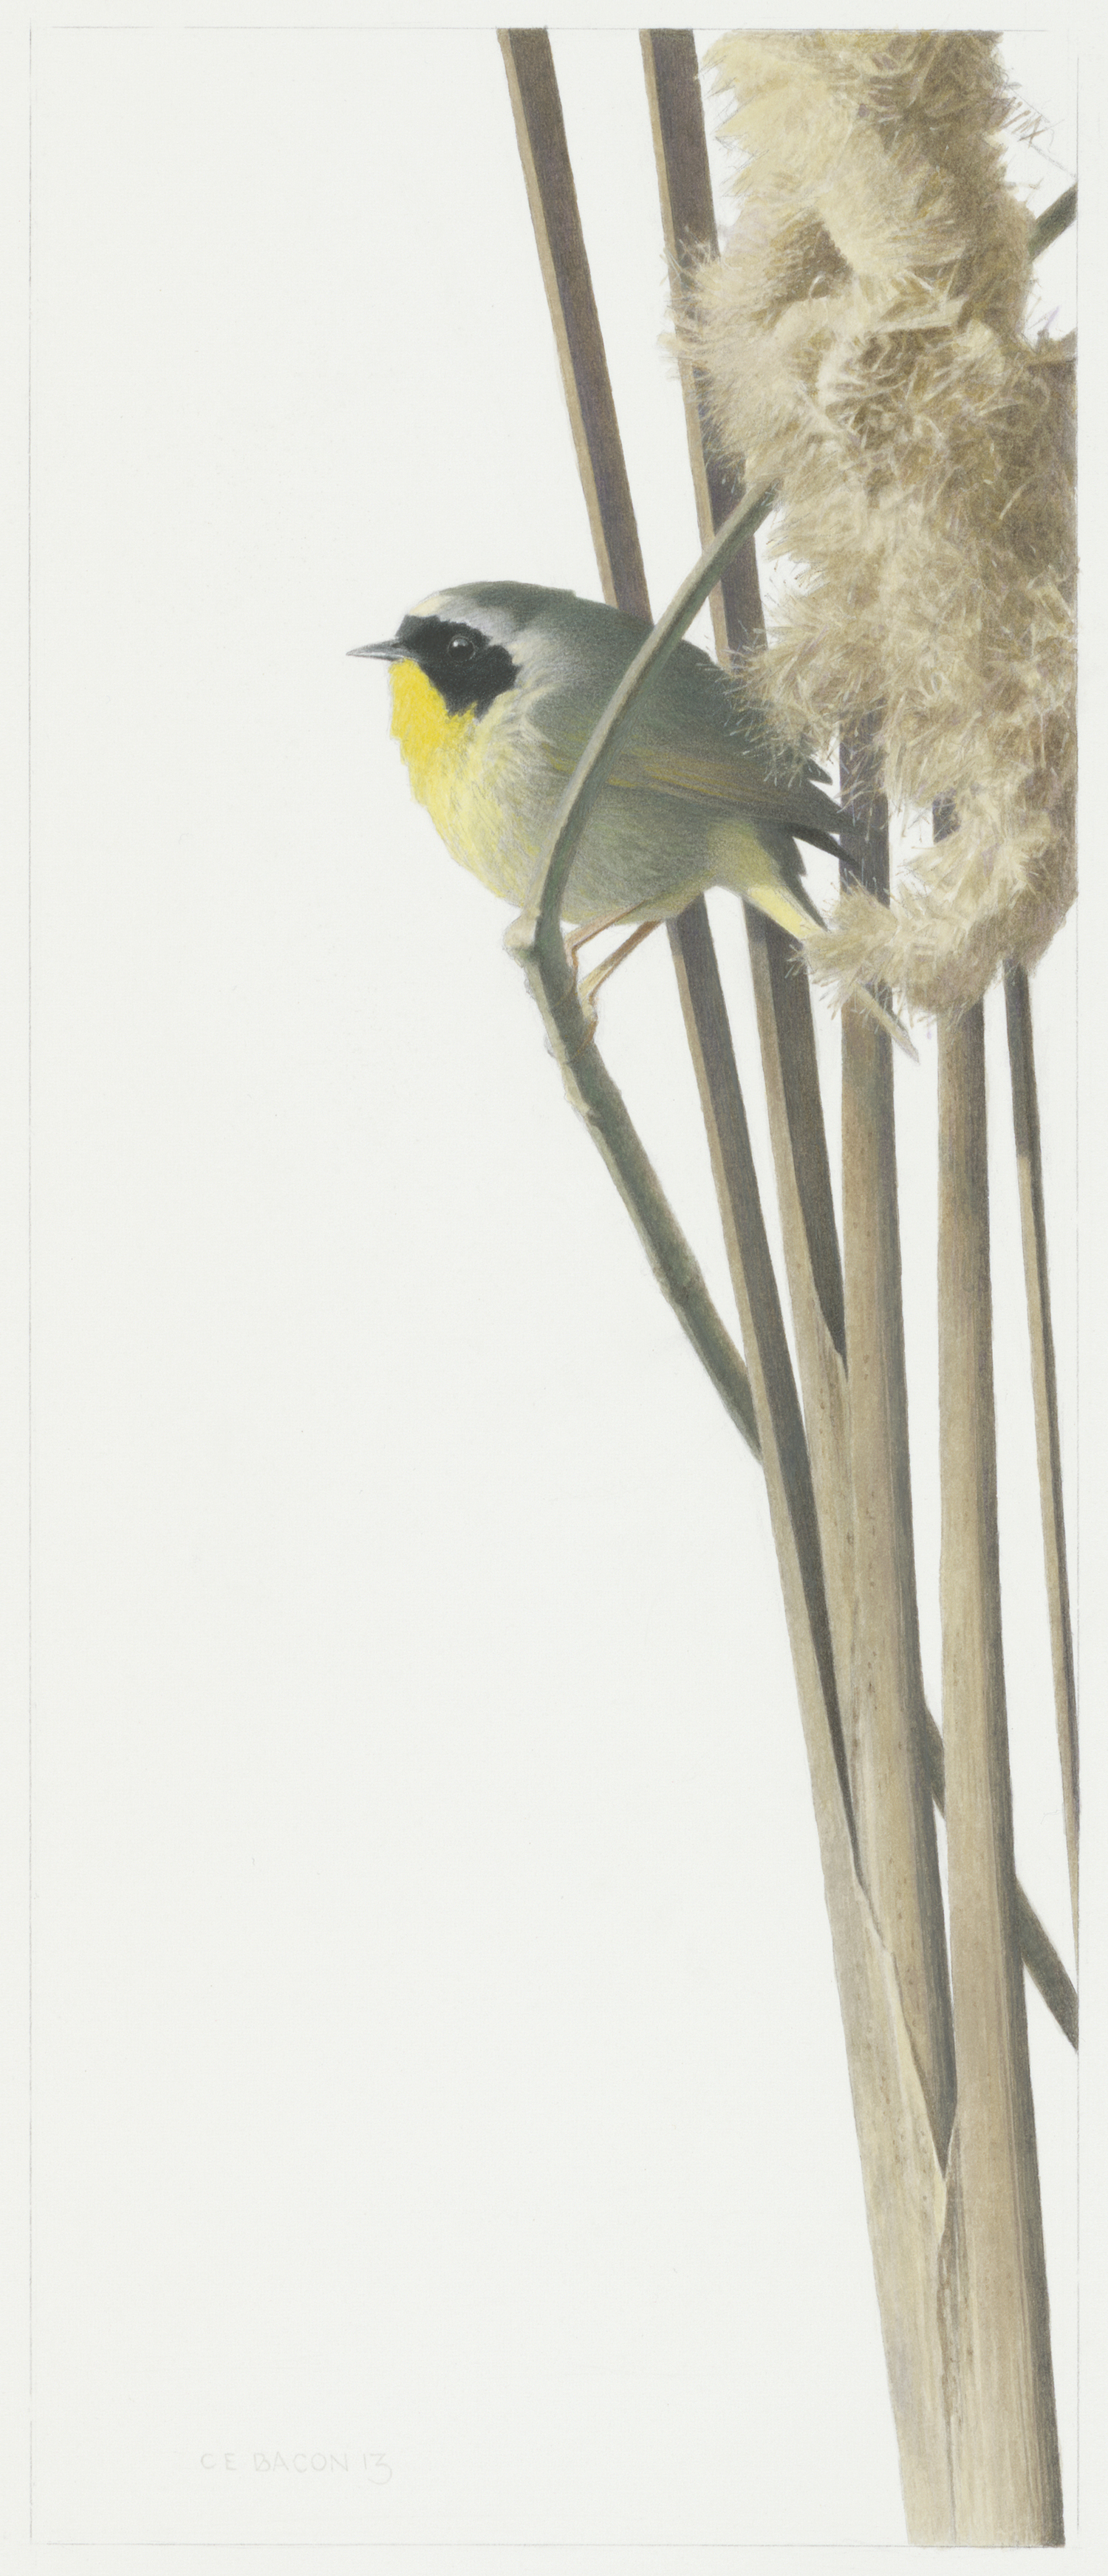 Study for Common Yellowthroat